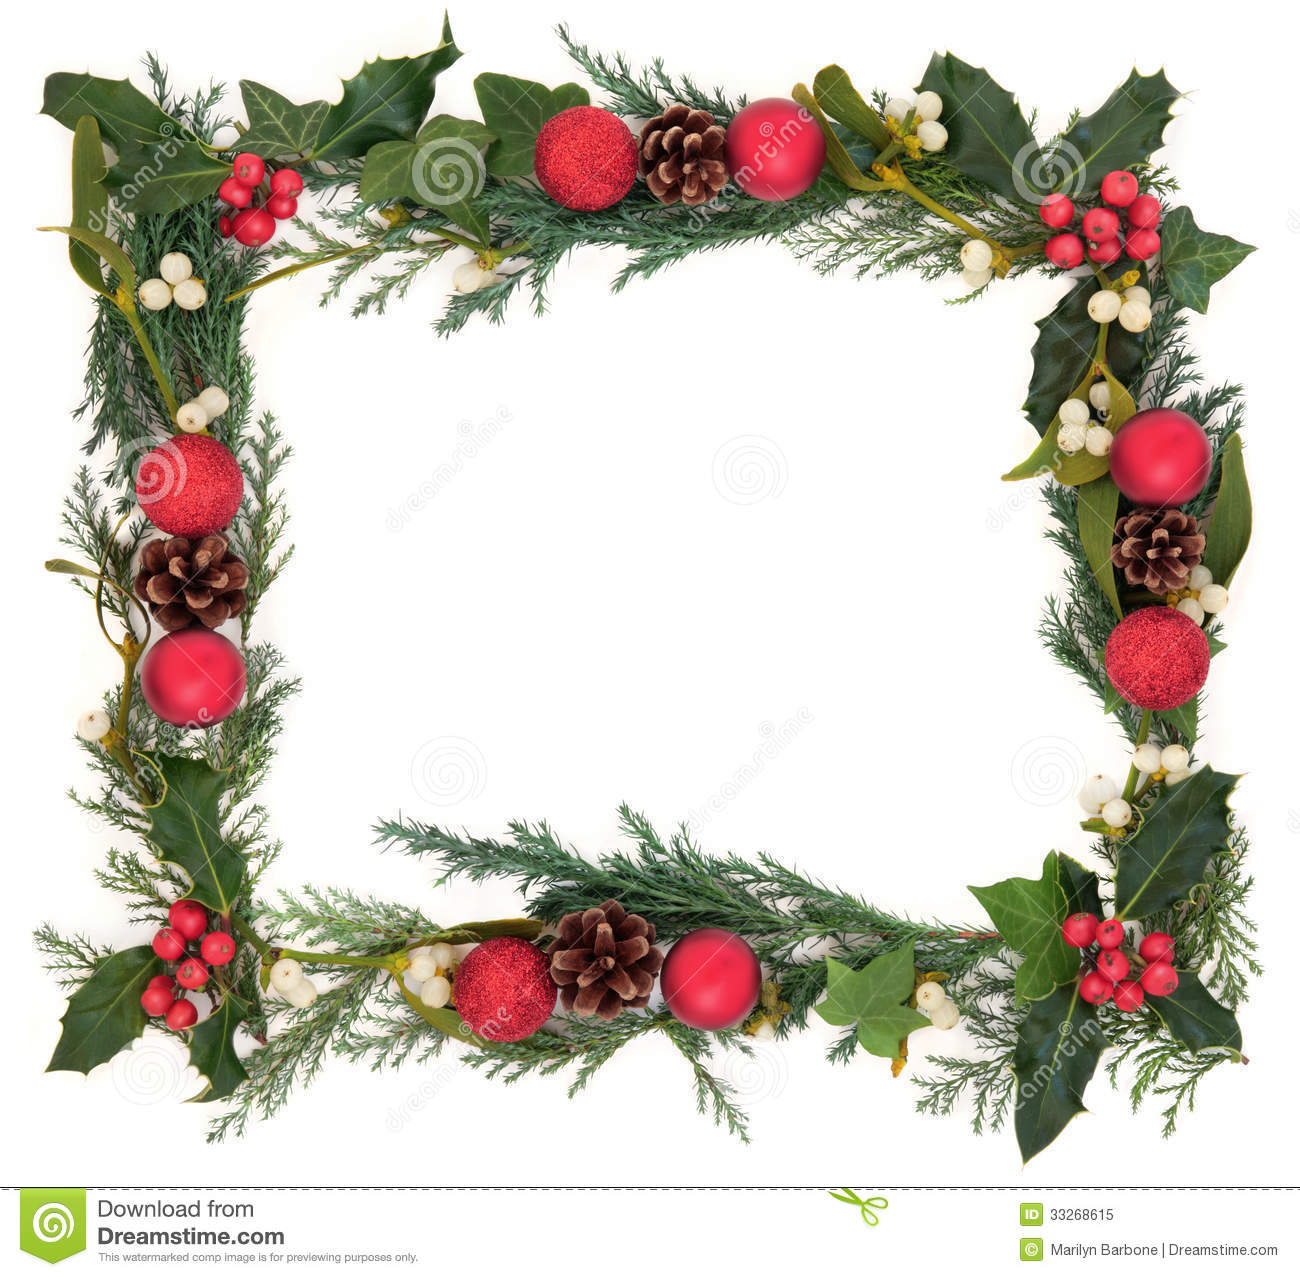 Mistletoe Magic PaperFrames Custom Border Papers | PaperDirect